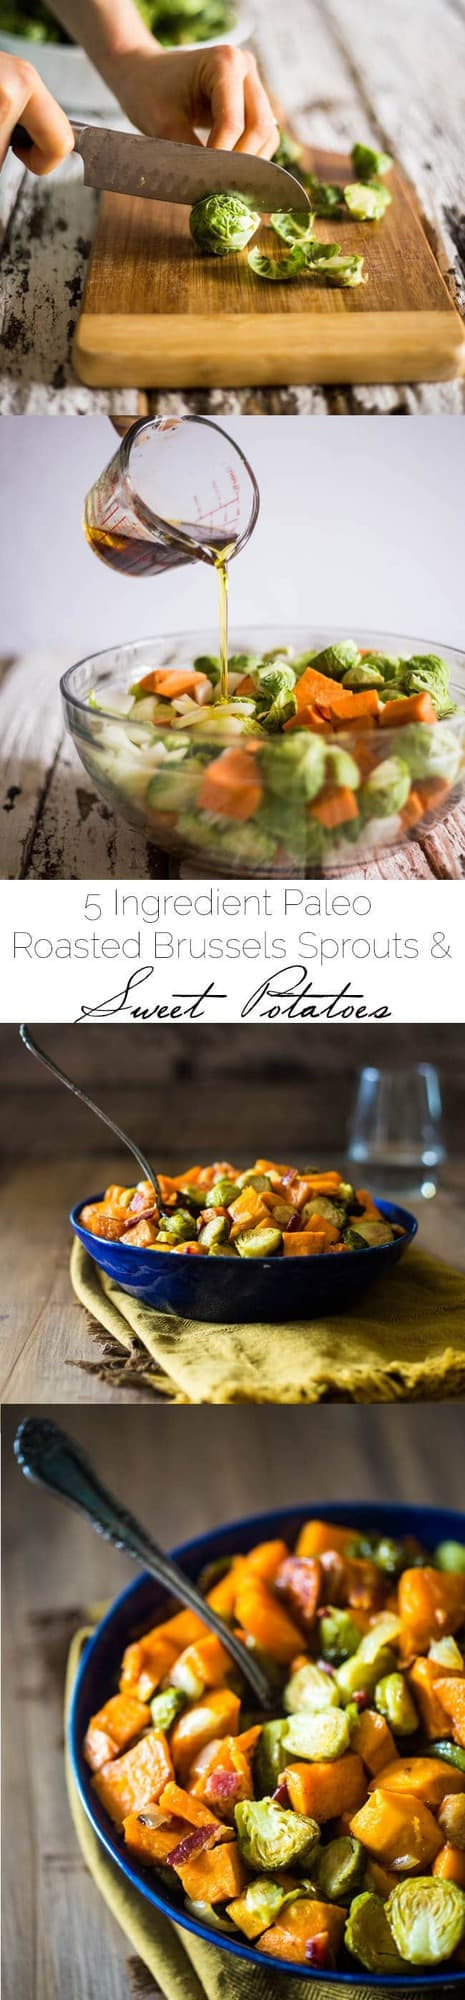 Paleo Maple Roasted Brussels Sprouts, Sweet Potatoes and Bacon - A gluten free, healthy side dish with only 5 ingredients, that is easy to make! Perfect for Thanksgiving or Christmas! | Foodfaithfitness.com | @FoodFaithFit | roasted brussel sprouts with bacon. roasted brussel sprouts and sweet potato. healthy roasted brussels sprouts. crispy roasted brussels sprouts. paleo roasted brussels sprouts. healthy thanksgiving recipes. healthy side dish recipes.